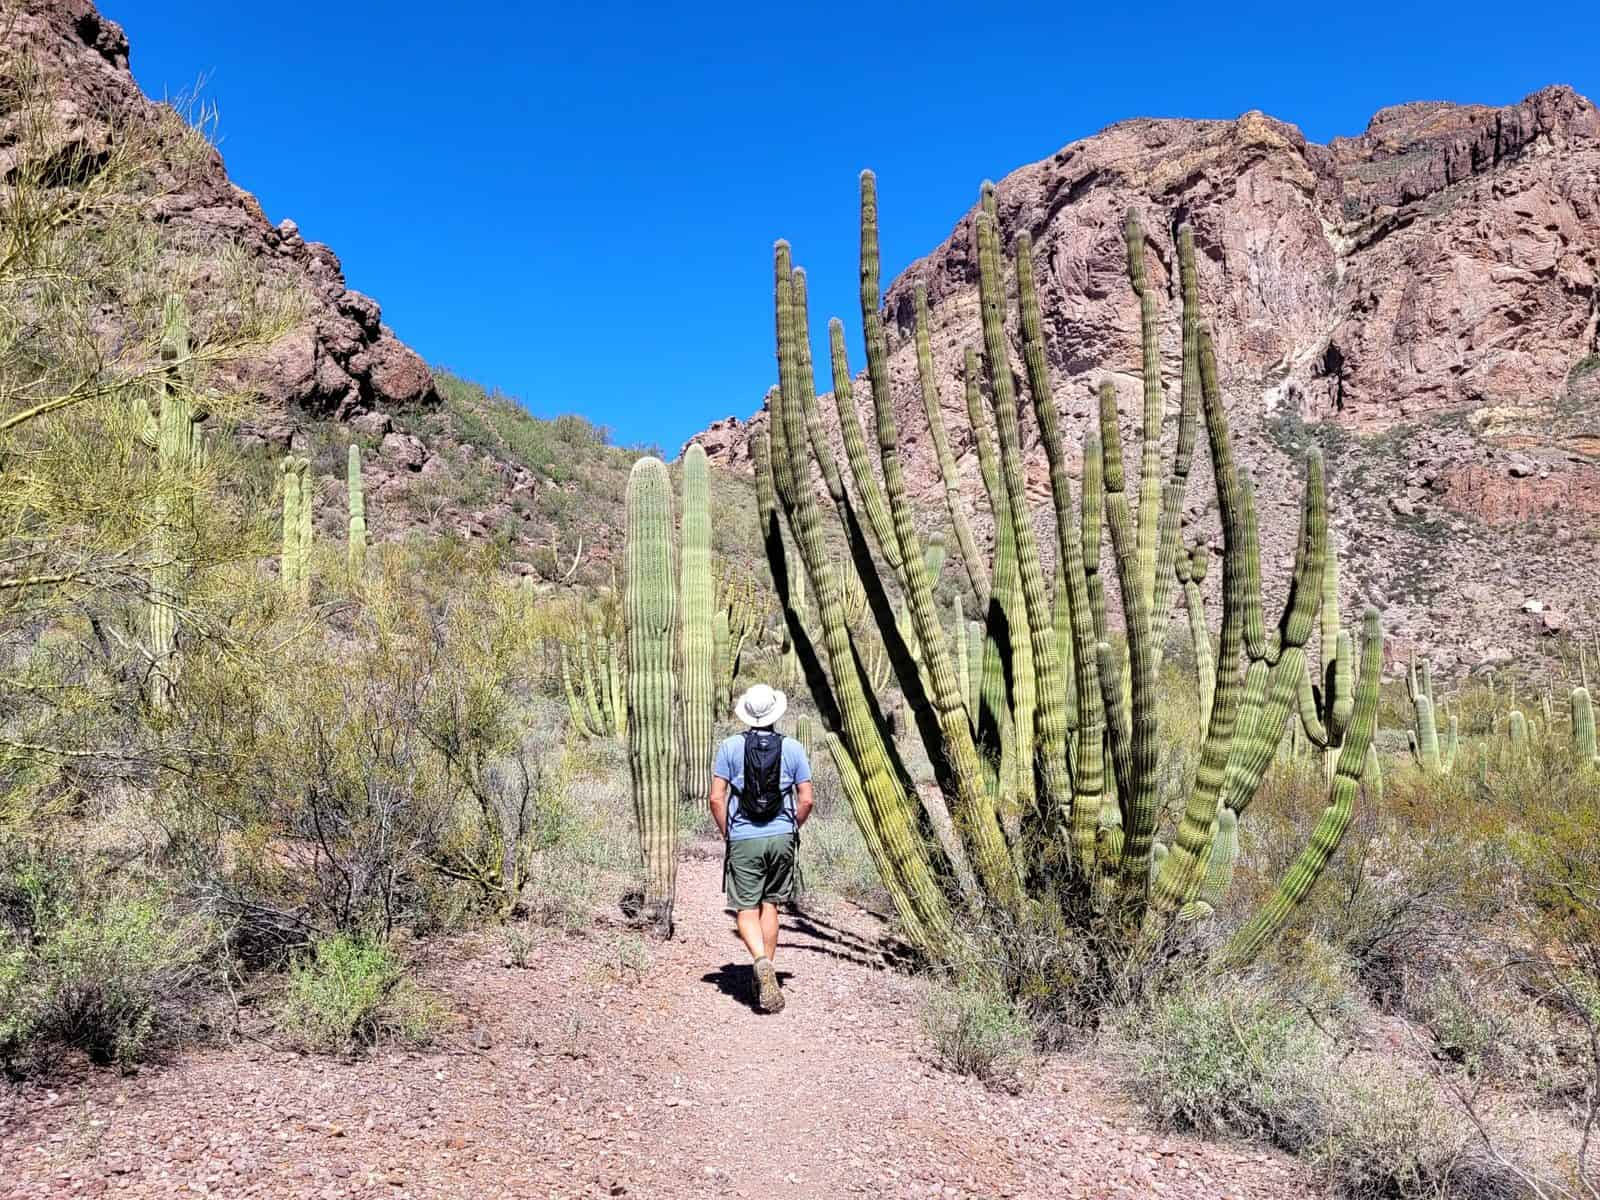 kevin on estes canyon trail at organ pipe cactus national monument